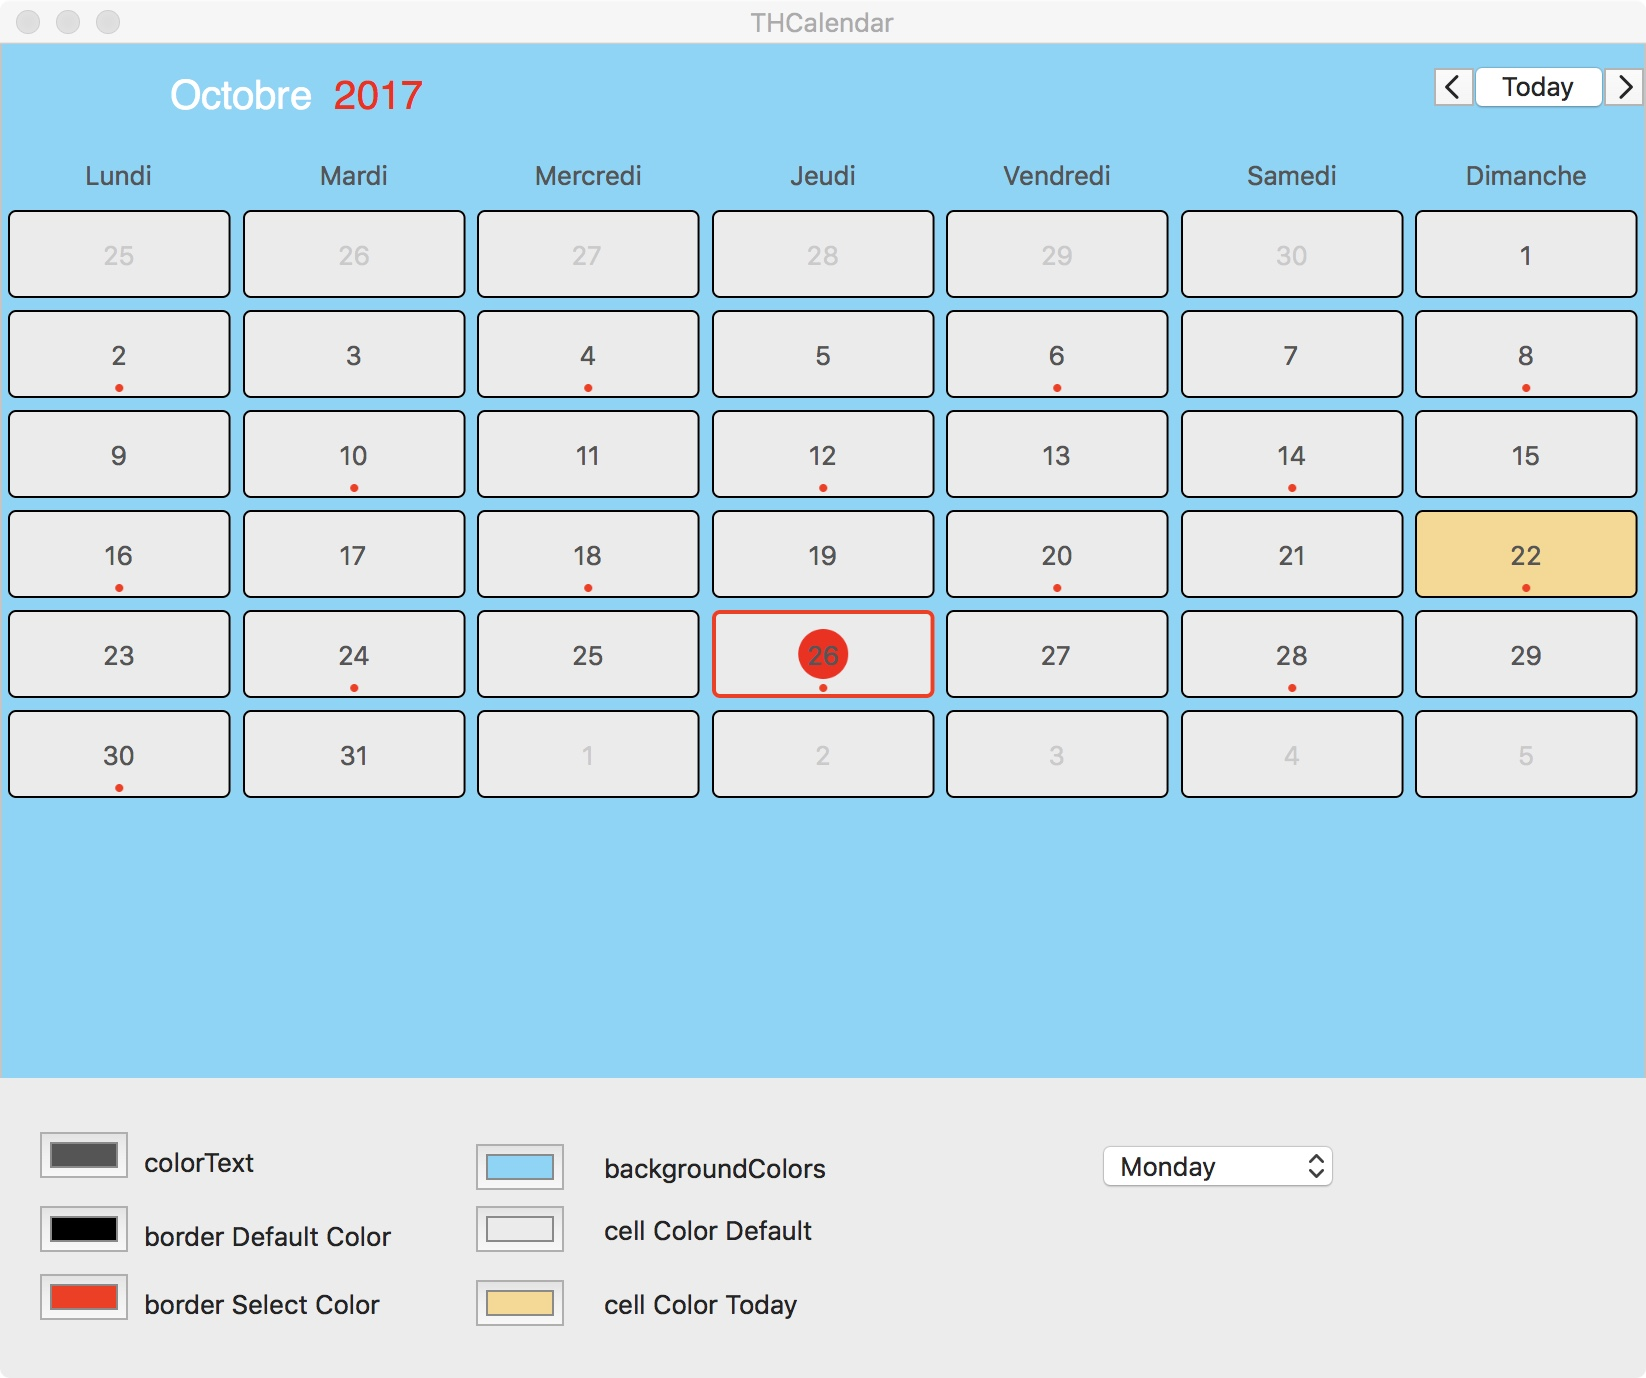 THCalendar screenshot